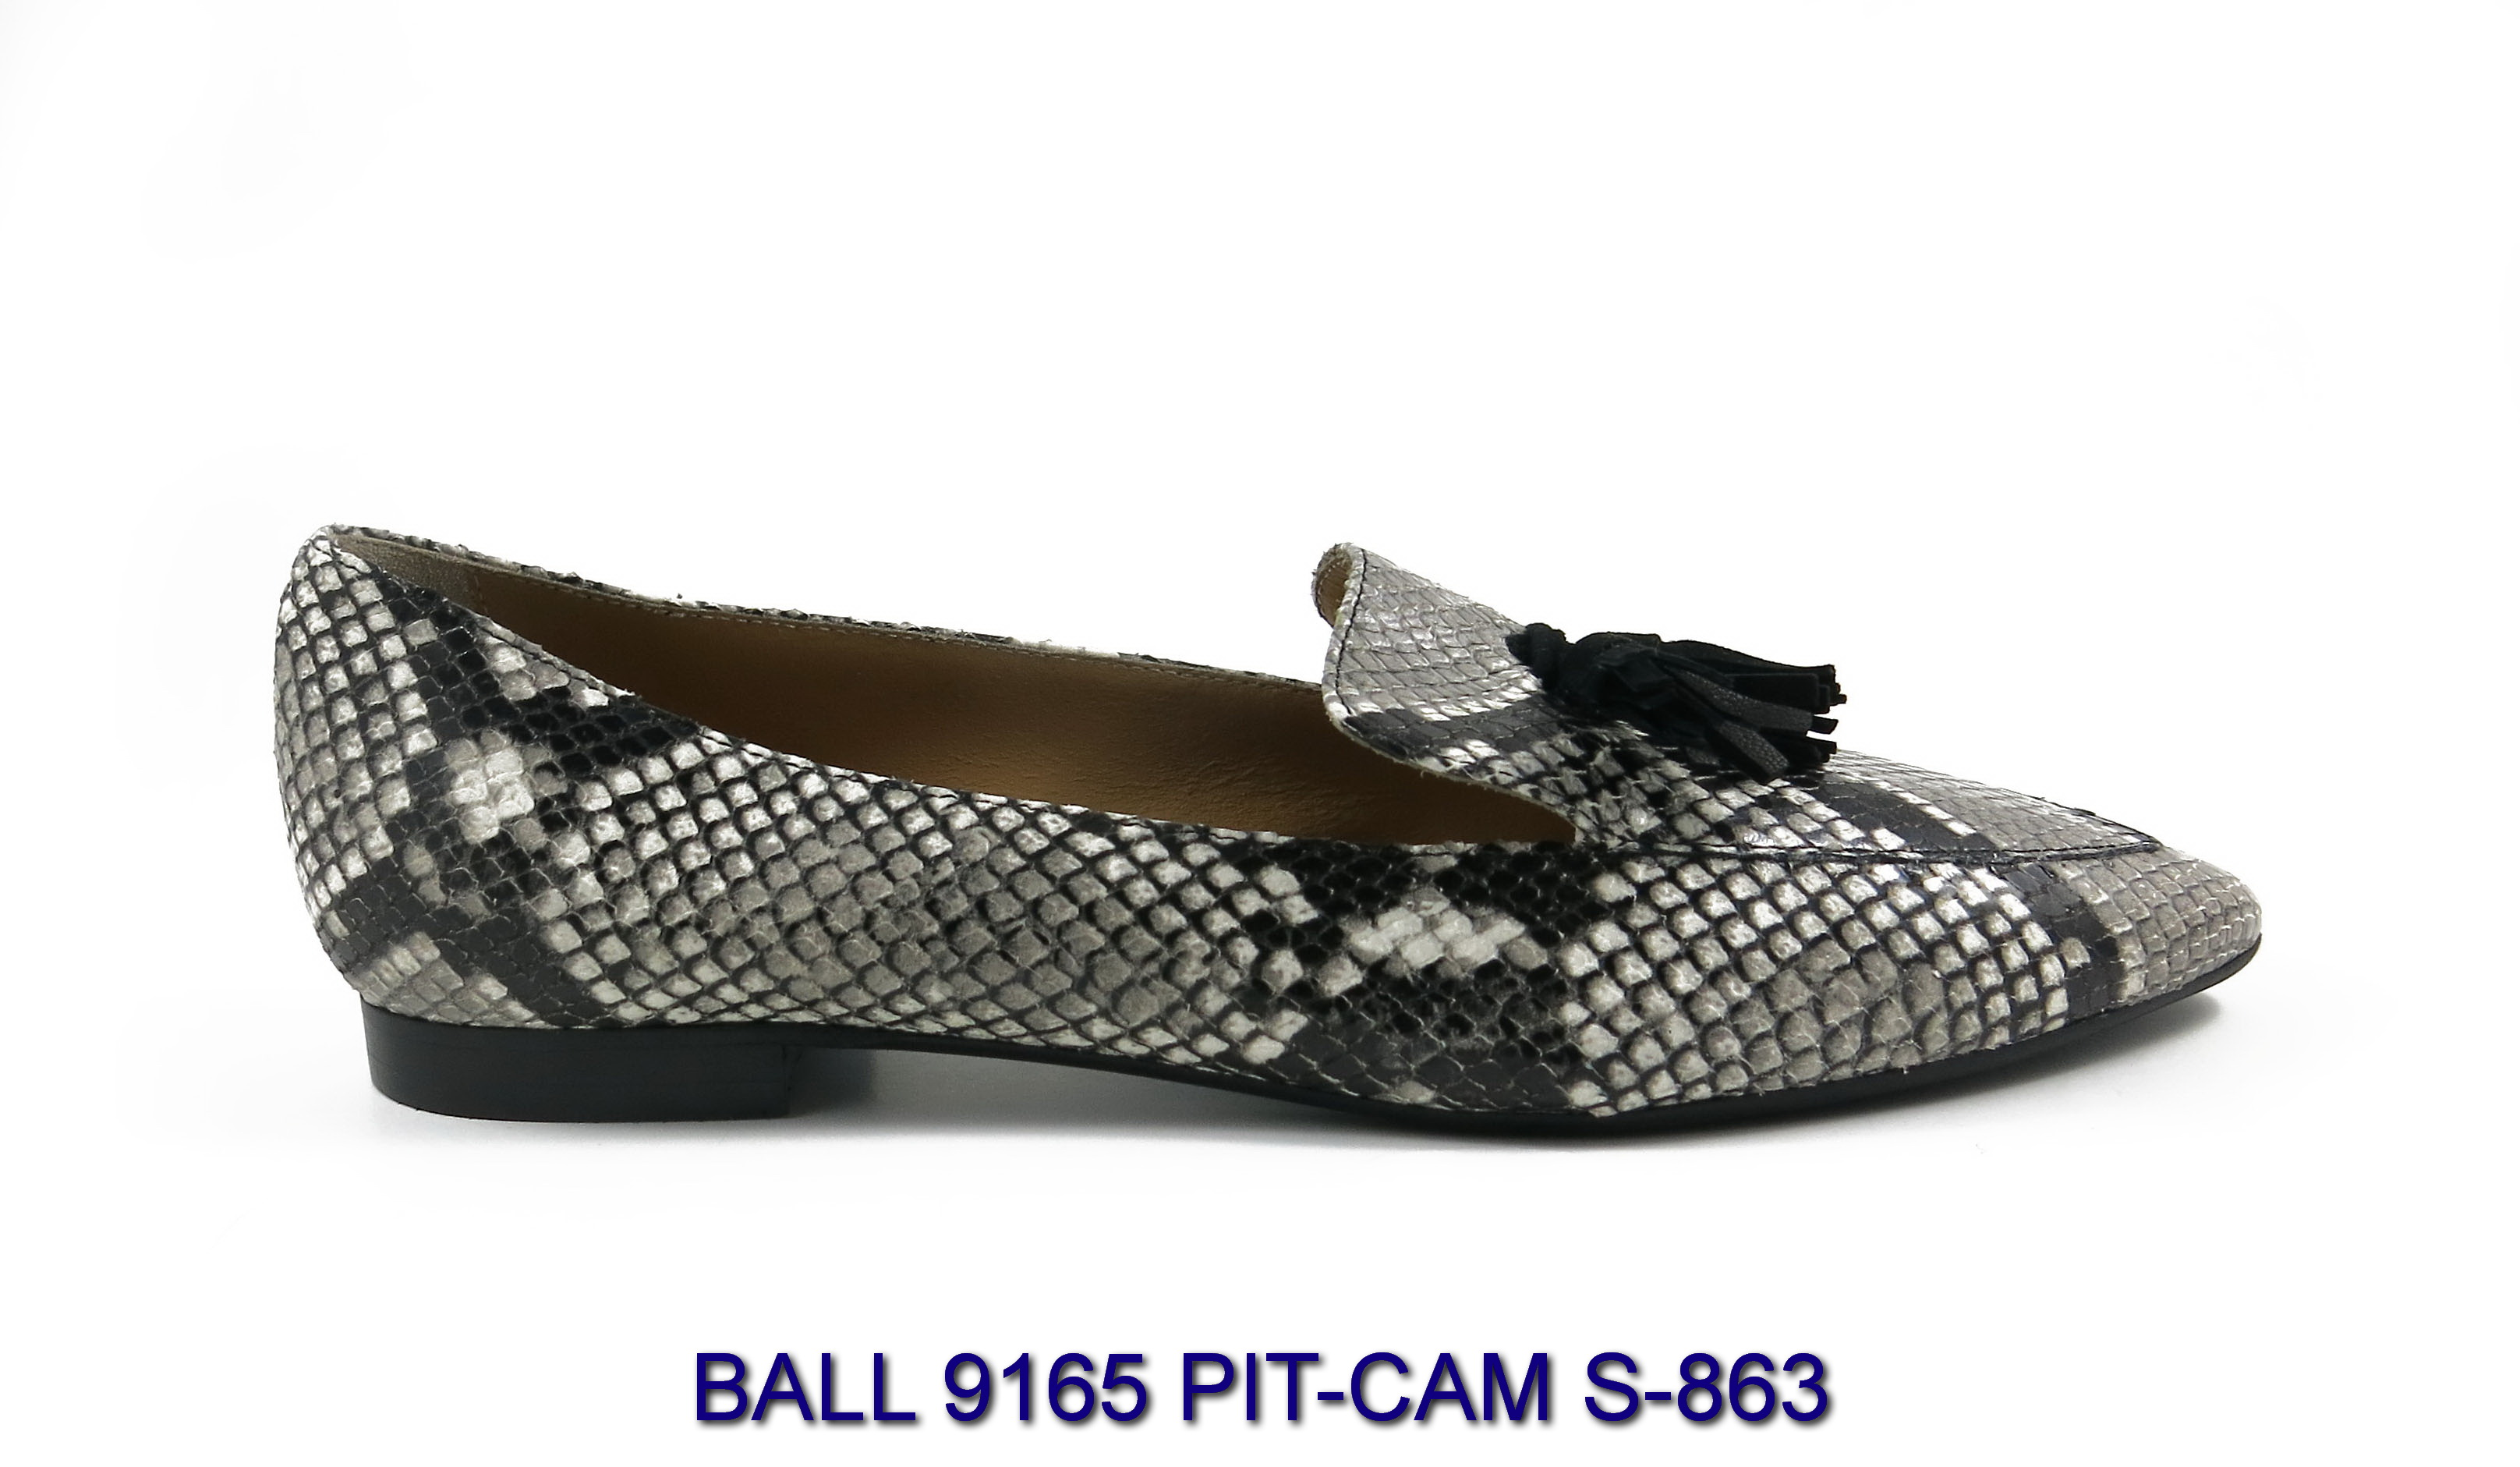 BALL-9165-PIT-CAM-S-863